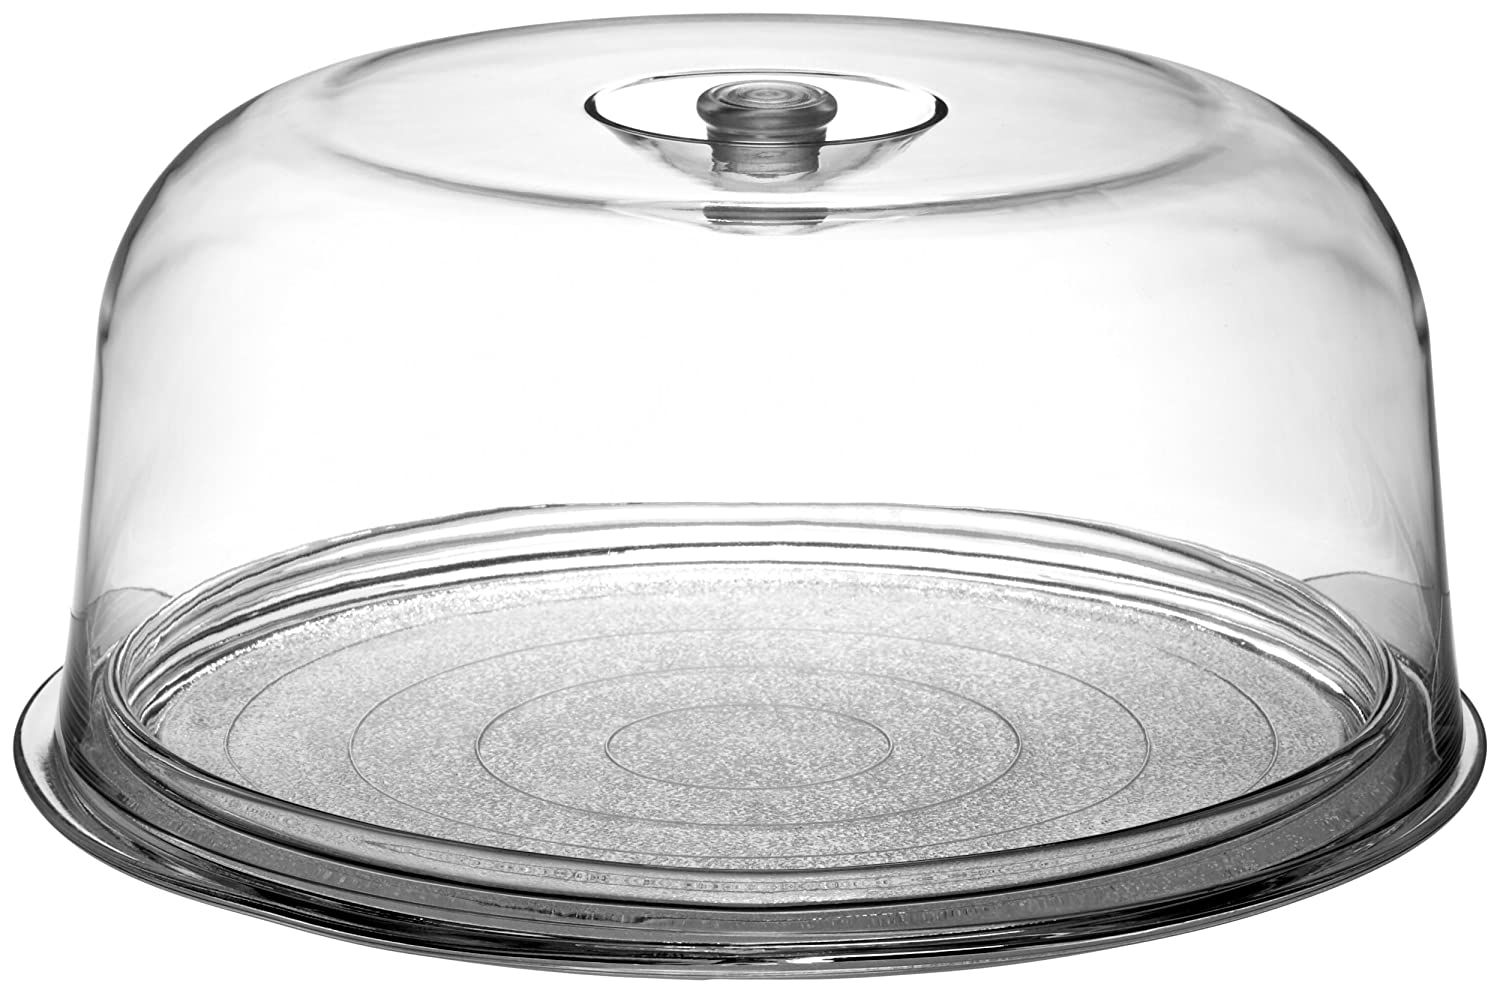 Amazon.com | Bormioli Rocco Ginevra Cake Platter With Plastic Dome Gift Boxed Cake Savers Cake Stands  sc 1 st  Amazon.com : cake plates with dome lids - pezcame.com